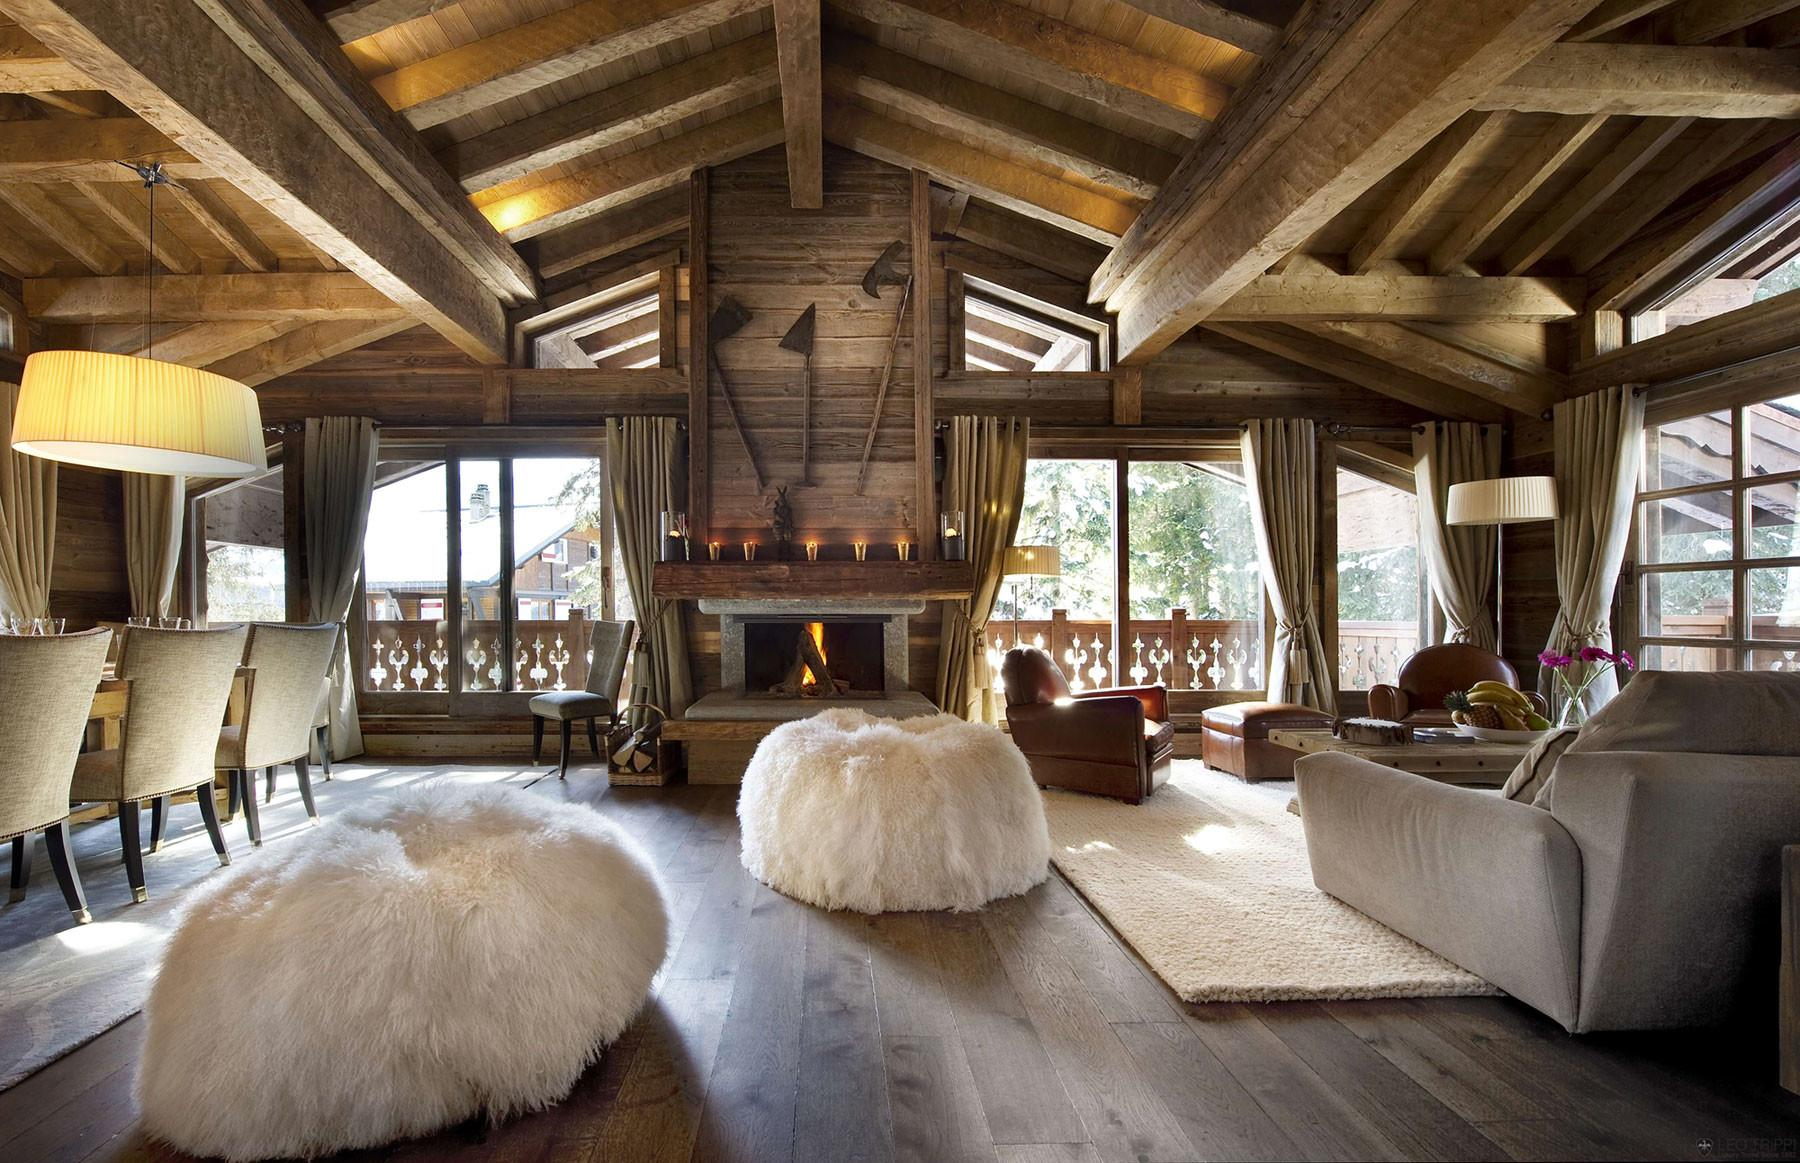 Cozy Chalet Les Gentianes 1850 French Alps